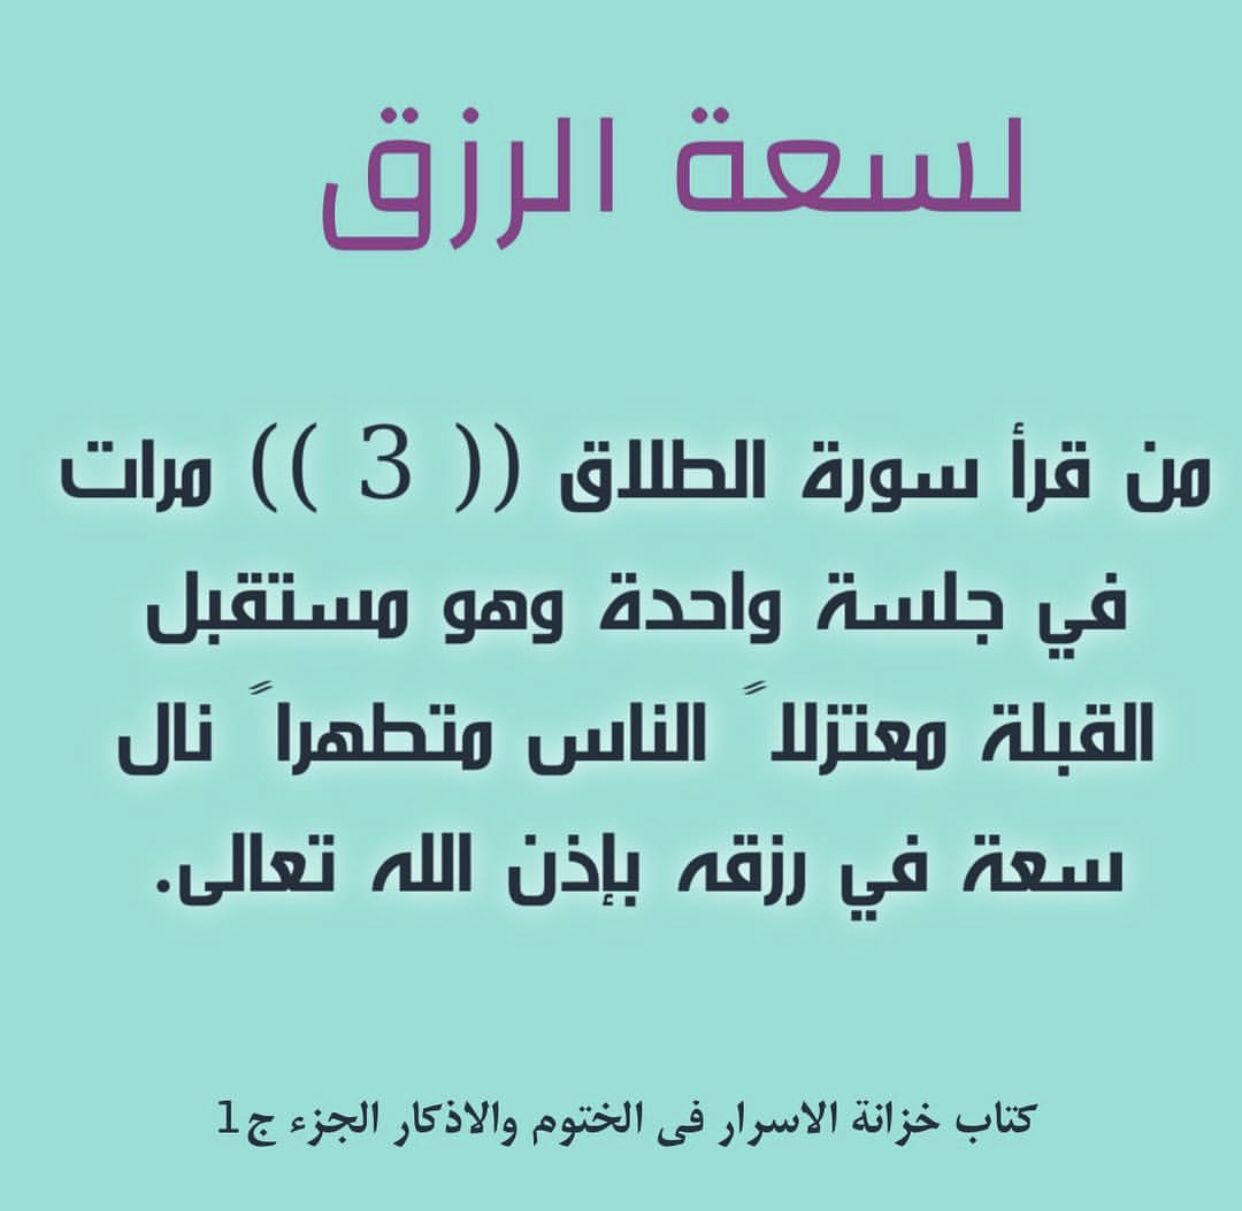 Pin By محمود ابو شروق On دعاء Islamic Love Quotes Quran Quotes Love Islam Facts